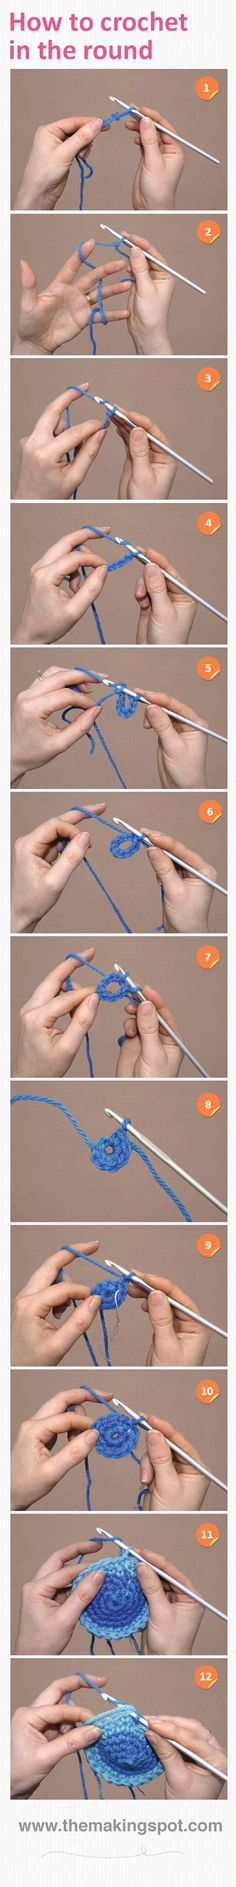 How to crochet in the round http://www.themakingspot.com/crochet/step-by-step/how-to-crochet-in-the-round?ns_campaign=tutorial_mchannel=pinterest_source=themakingspot_linkname=How-to-crochet-in-the-round_fee=0_day_of_post=Mon_time_of_post=16-17